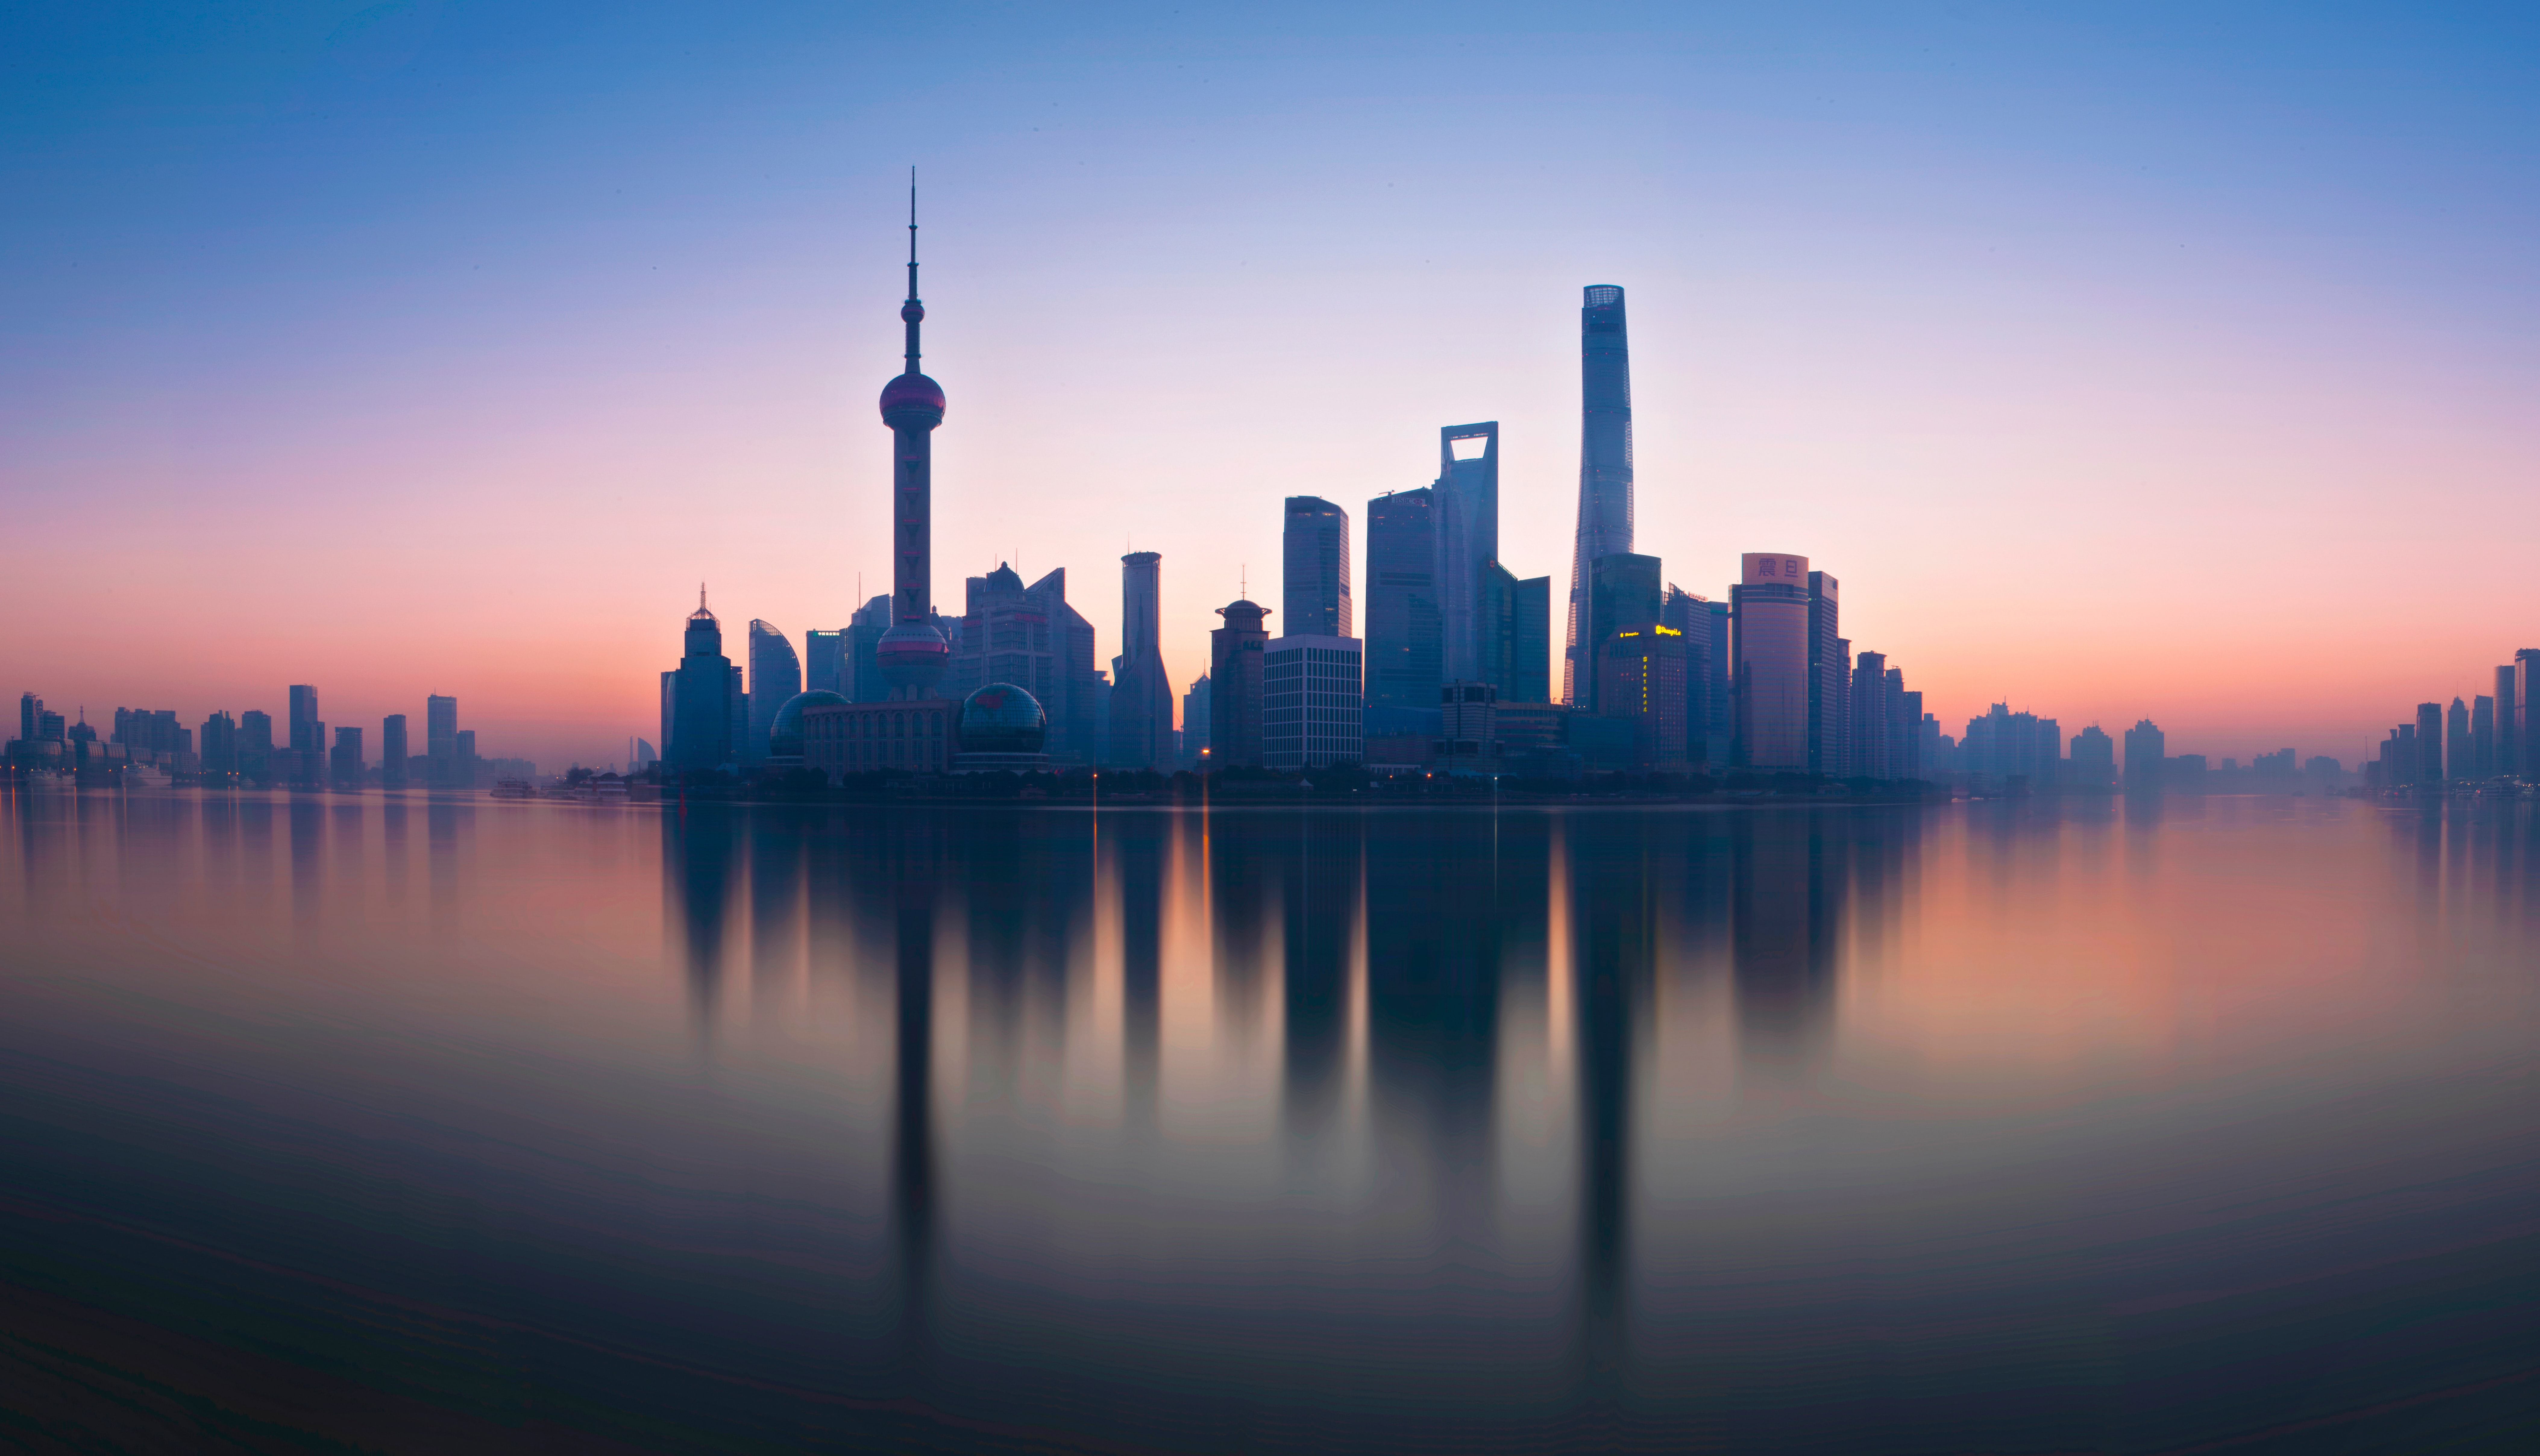 The latest news from our colleagues in China